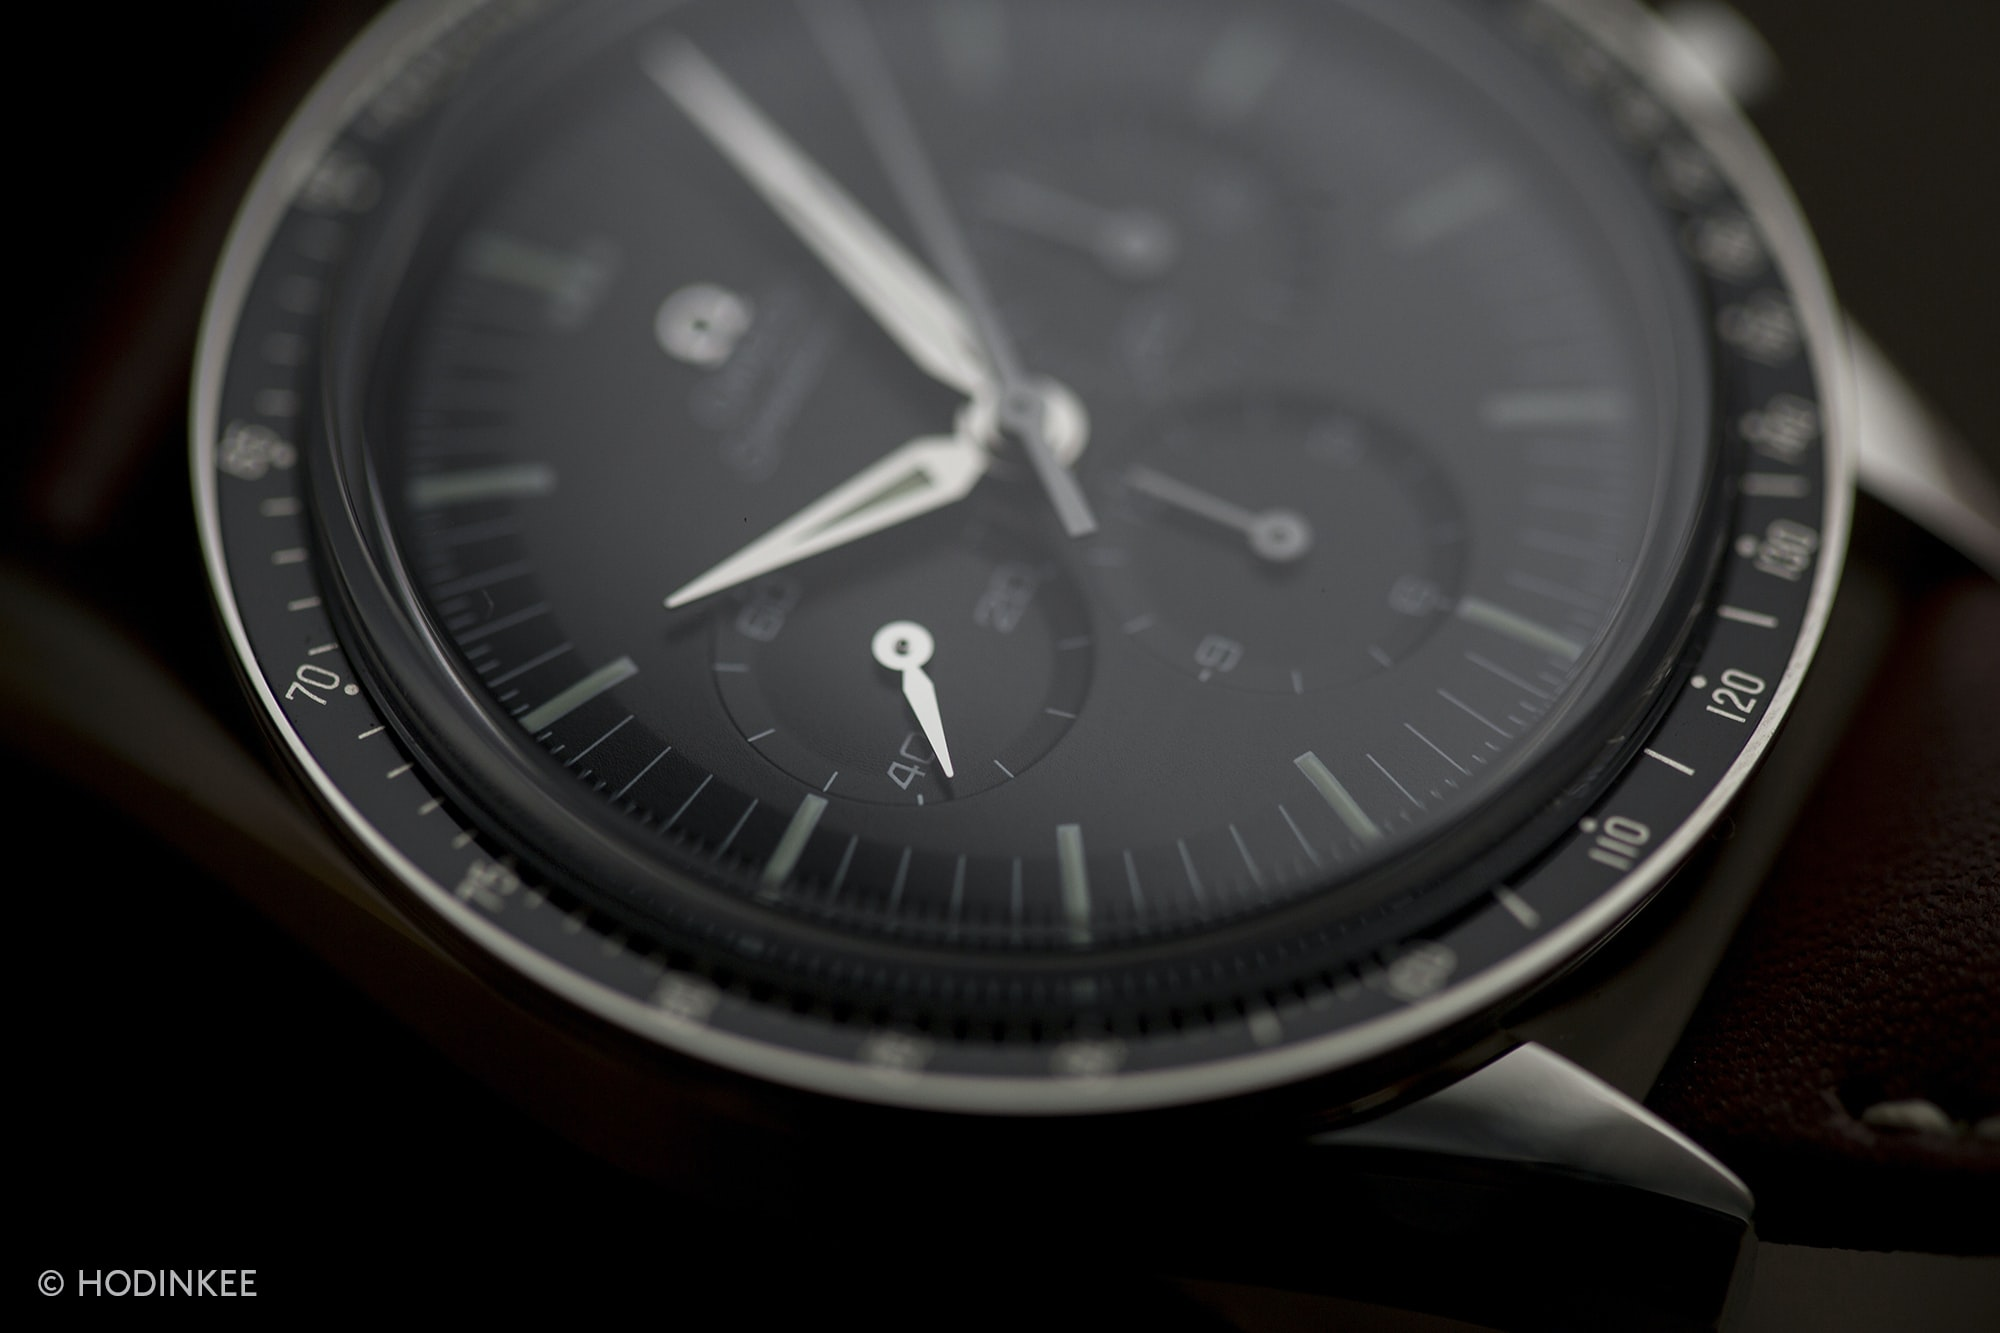 Omega Speedmaster First Omega In Space Review A Week On The Wrist: The Omega Speedmaster 'First Omega In Space' A Week On The Wrist: The Omega Speedmaster 'First Omega In Space' 588A0099 copy